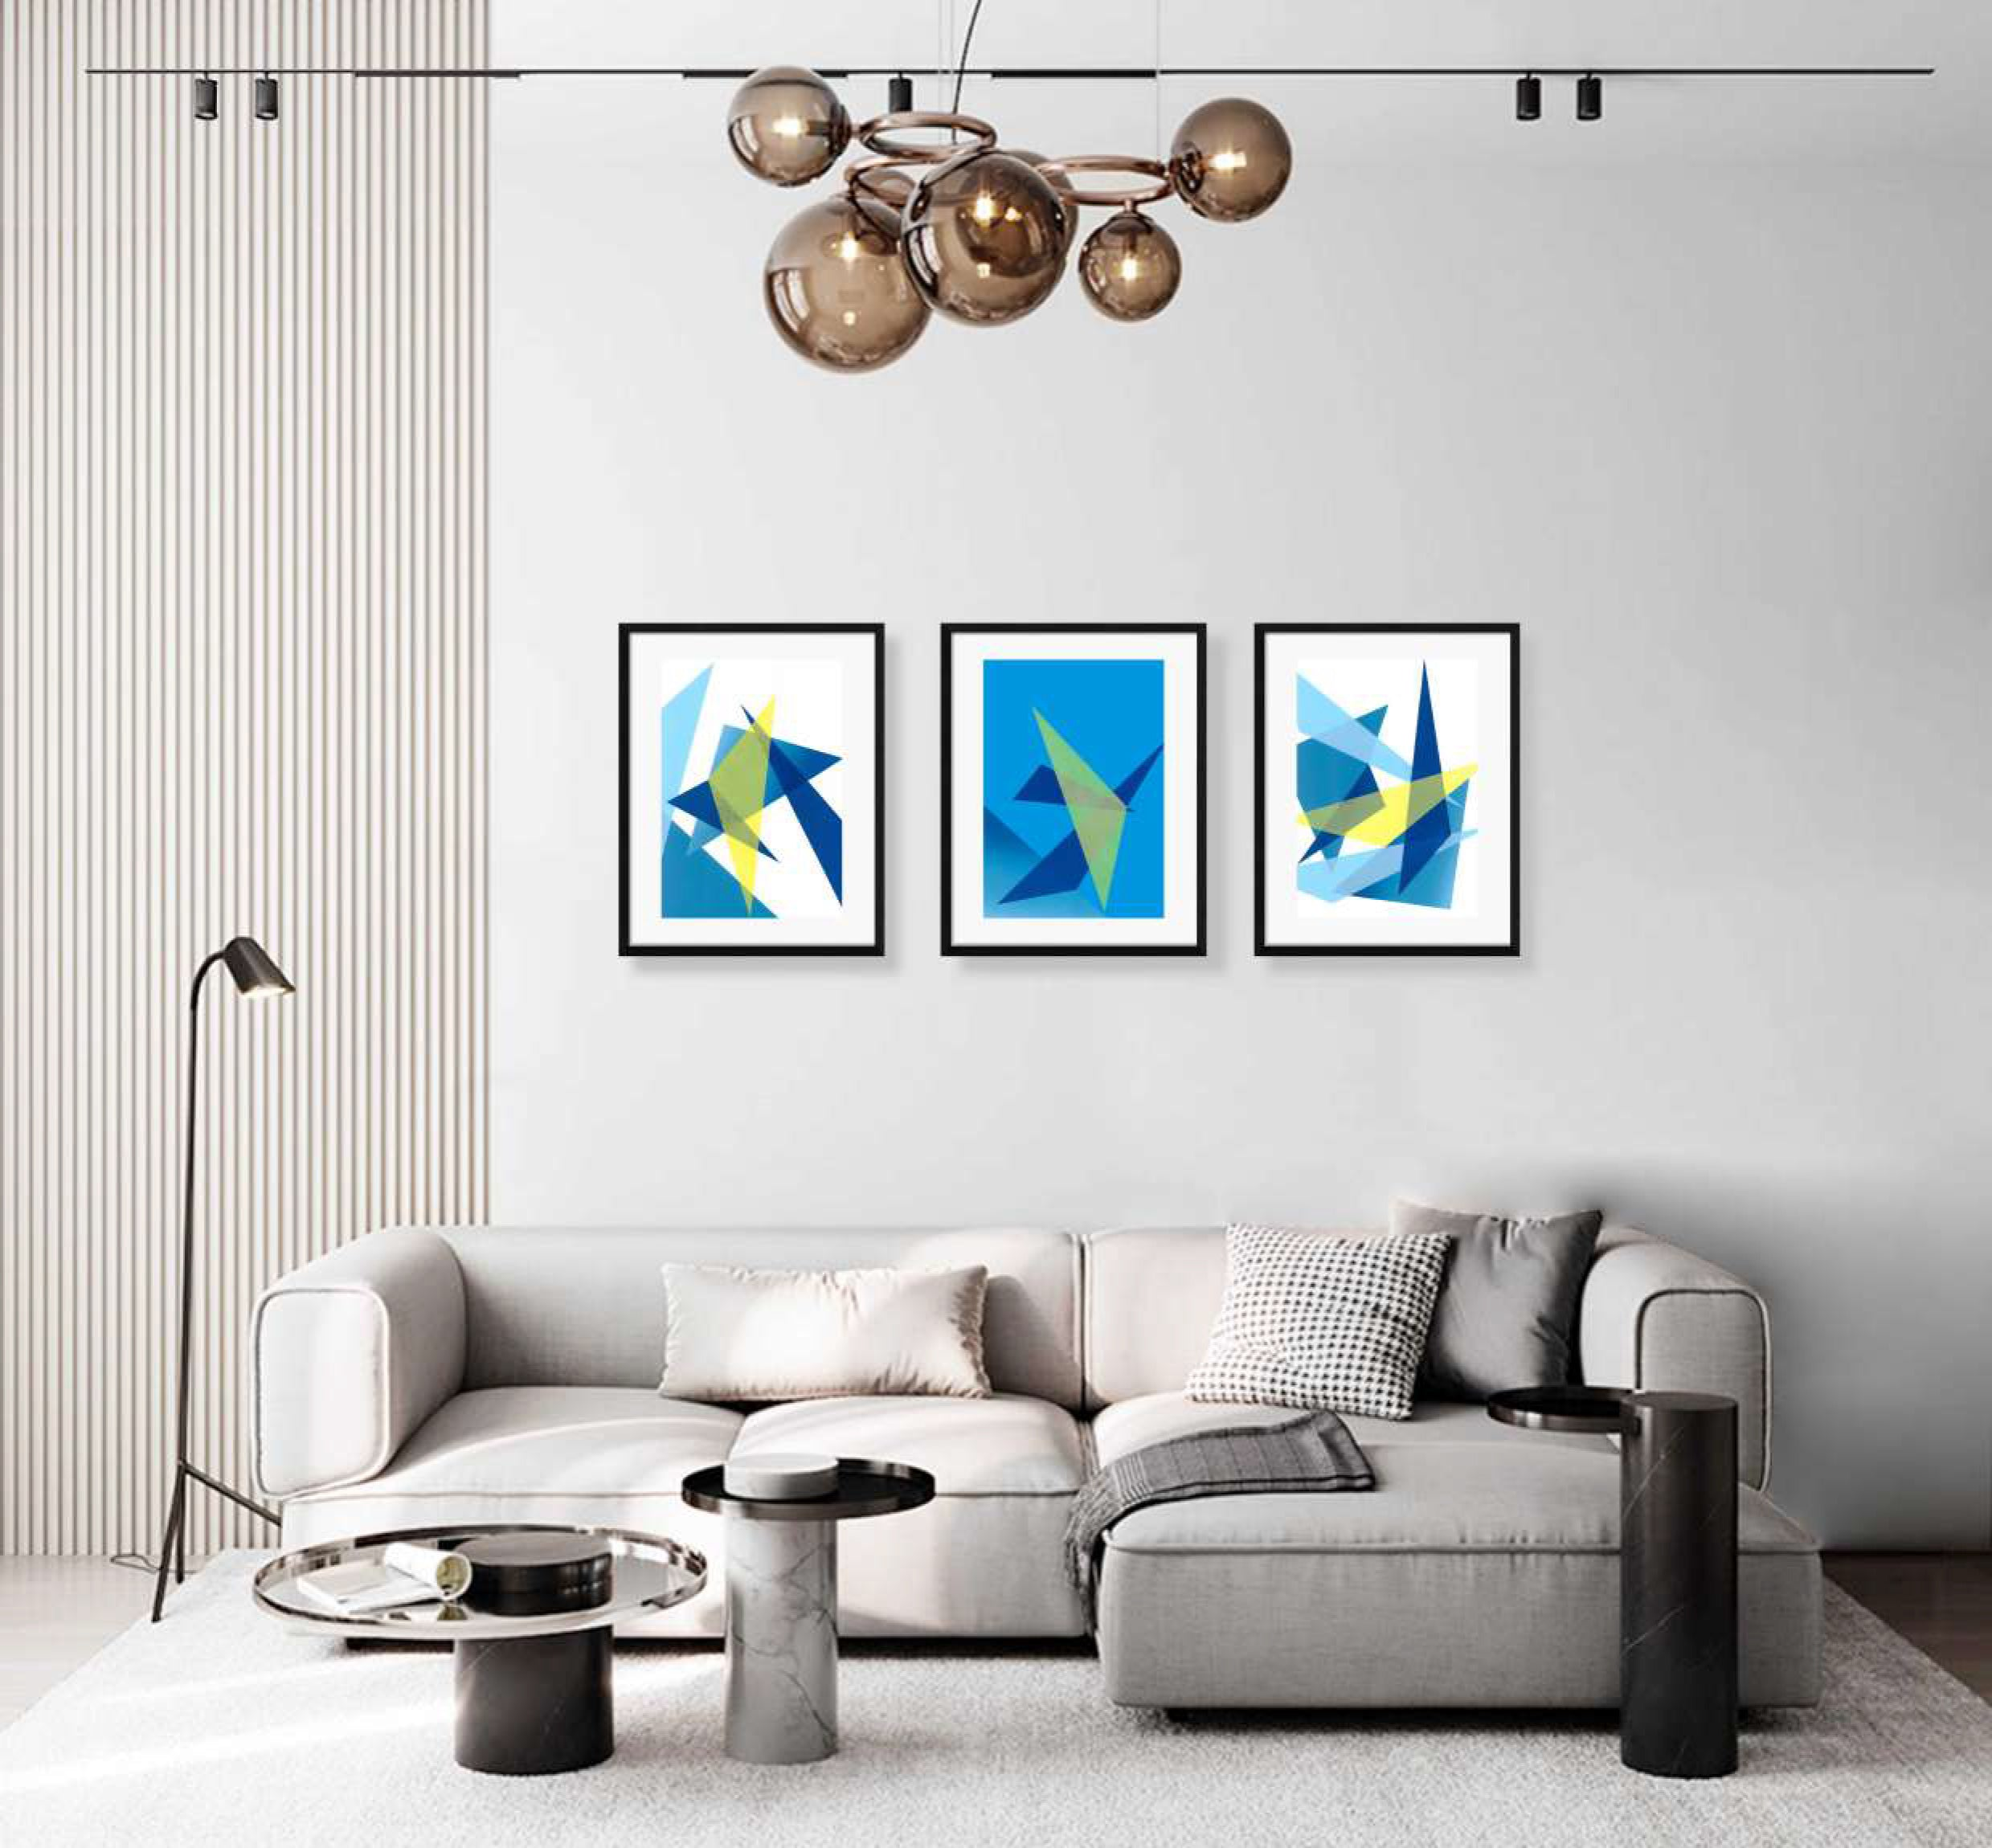 variety collection of framed blue and yellow geometric shaped print interior display